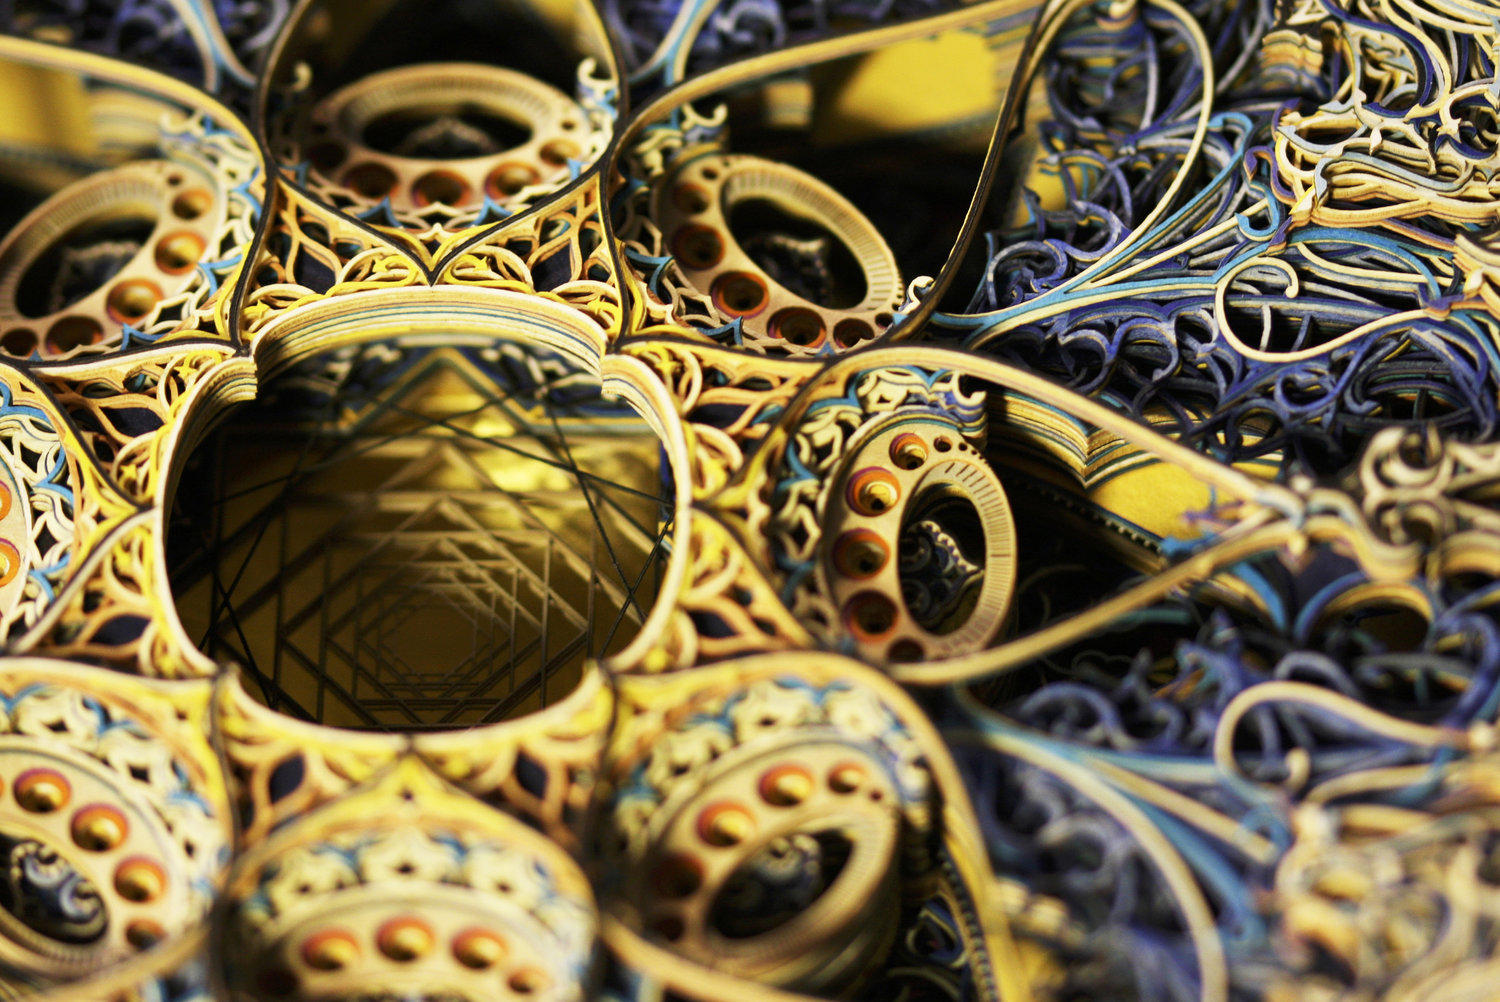 Eric Standleys Laser Cut Paper Art Works Collateral - Beautiful laser cut paper art eric standley